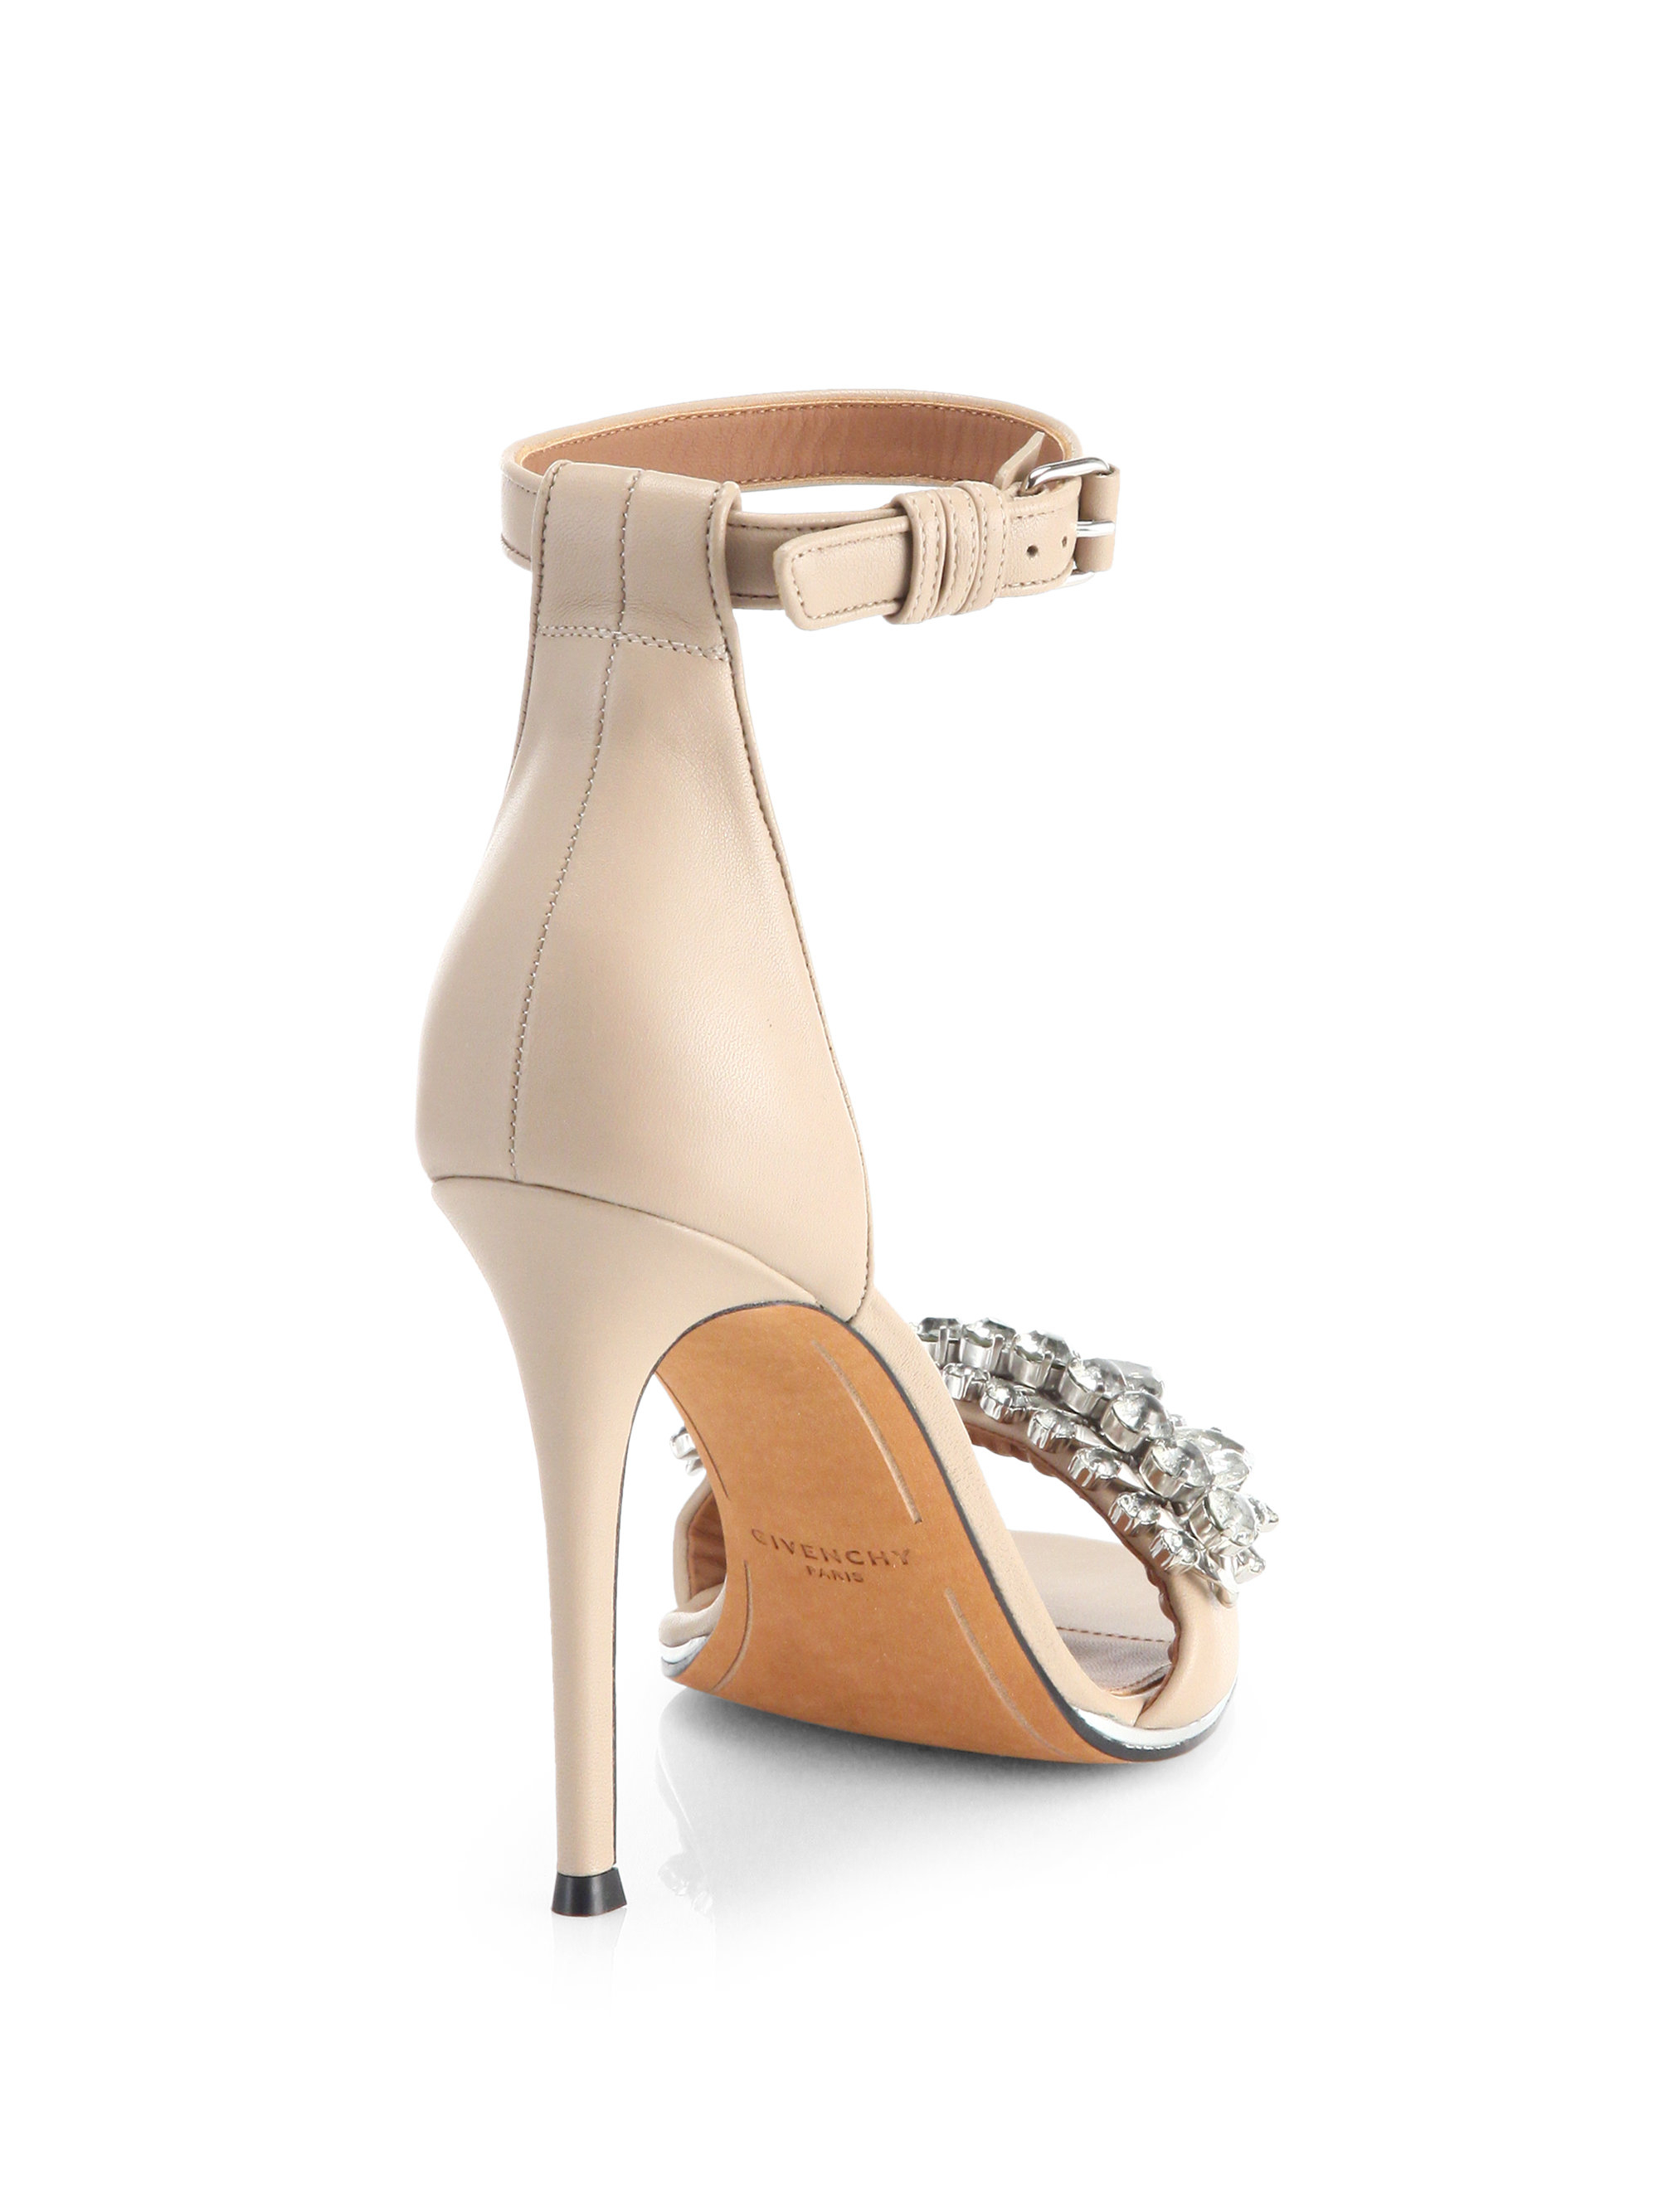 cfcae4716bc035 Lyst - Givenchy Jeweled Mona Sandals in Natural